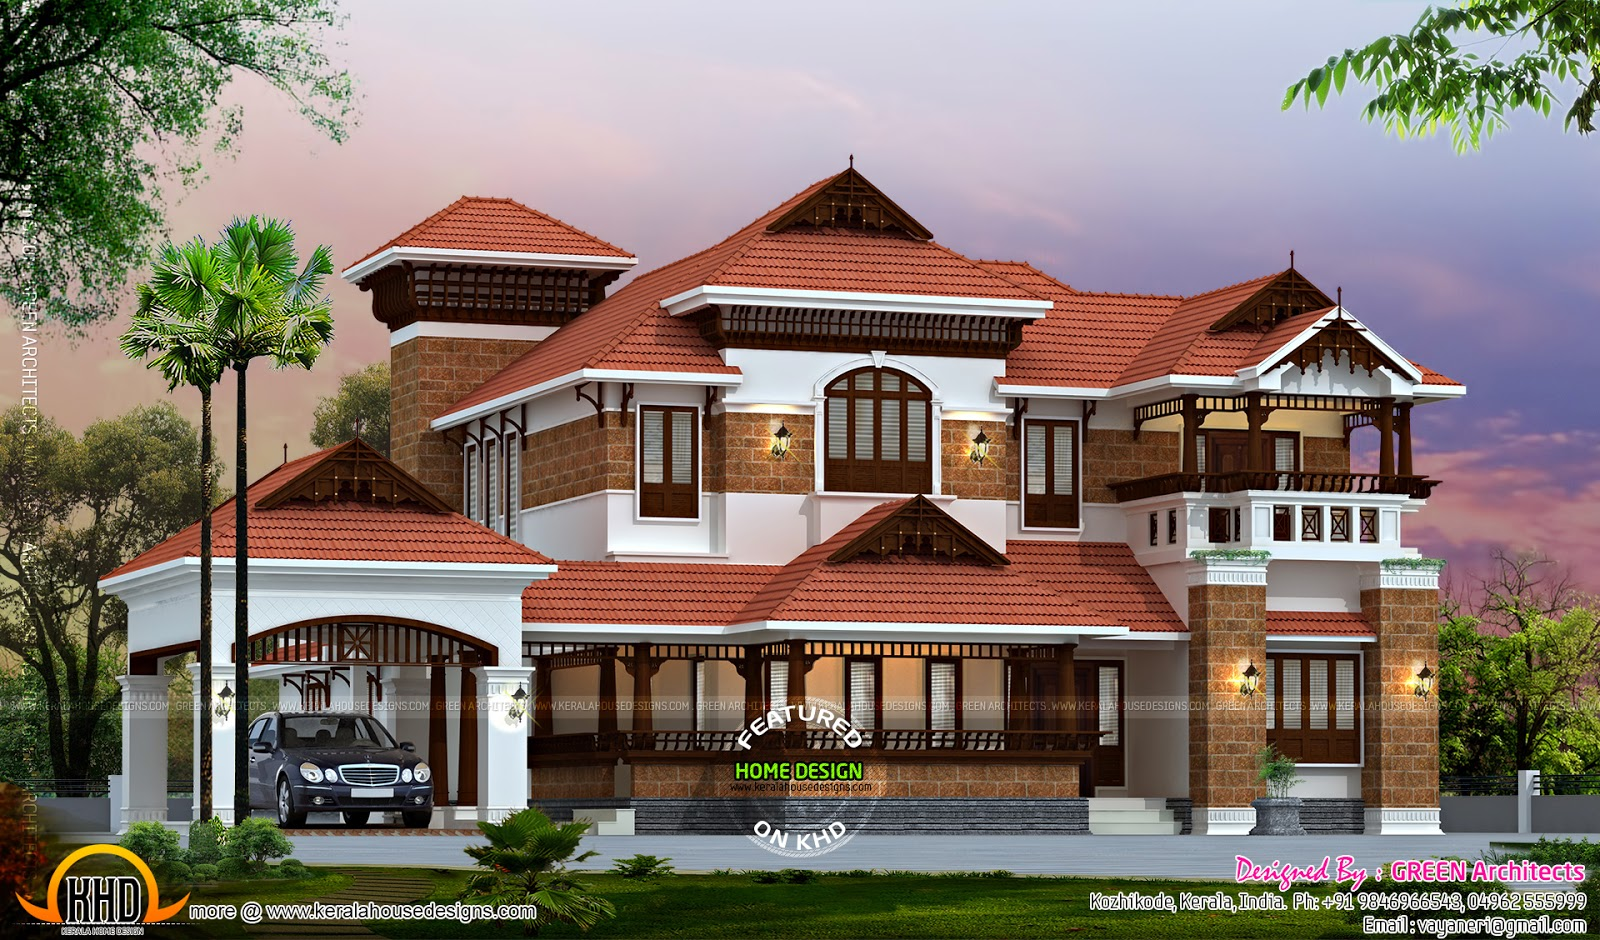 Nalukettu traditional home - Kerala home design and floor plans on small traditional house plans, custom 2 story house plans, one story traditional house plans, indian tradition house plans, new england traditional house plans, affordable 4 bedroom house plans, traditional japanese house floor plans, modern traditional house plans, traditional home house plans, florida traditional house plans, amish traditional house plans, exterior house plans,